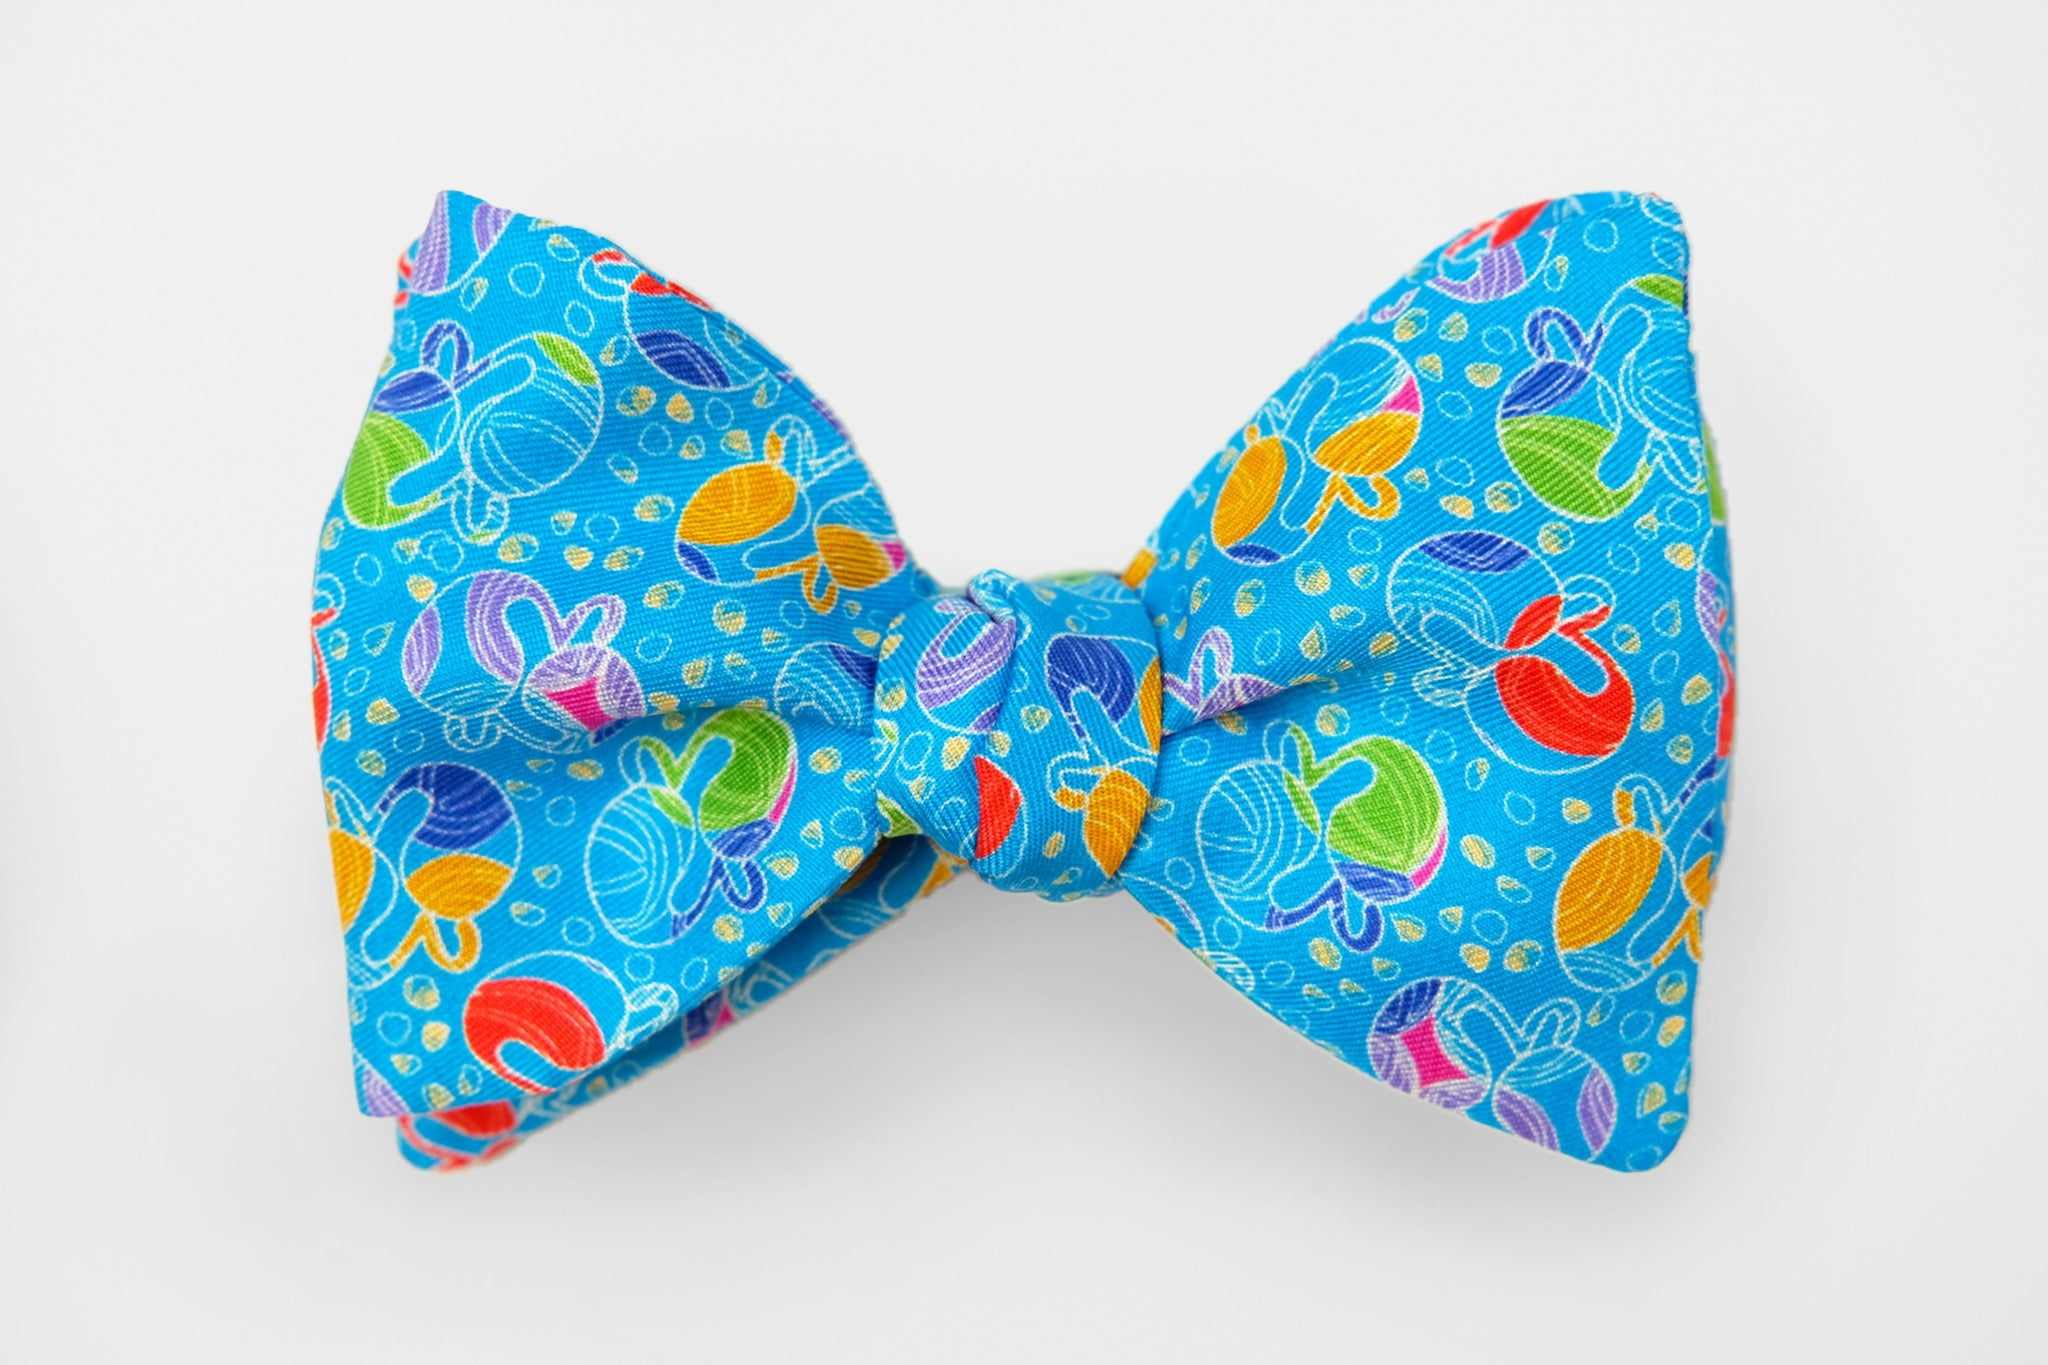 Light Blue with Colorful Whale Print